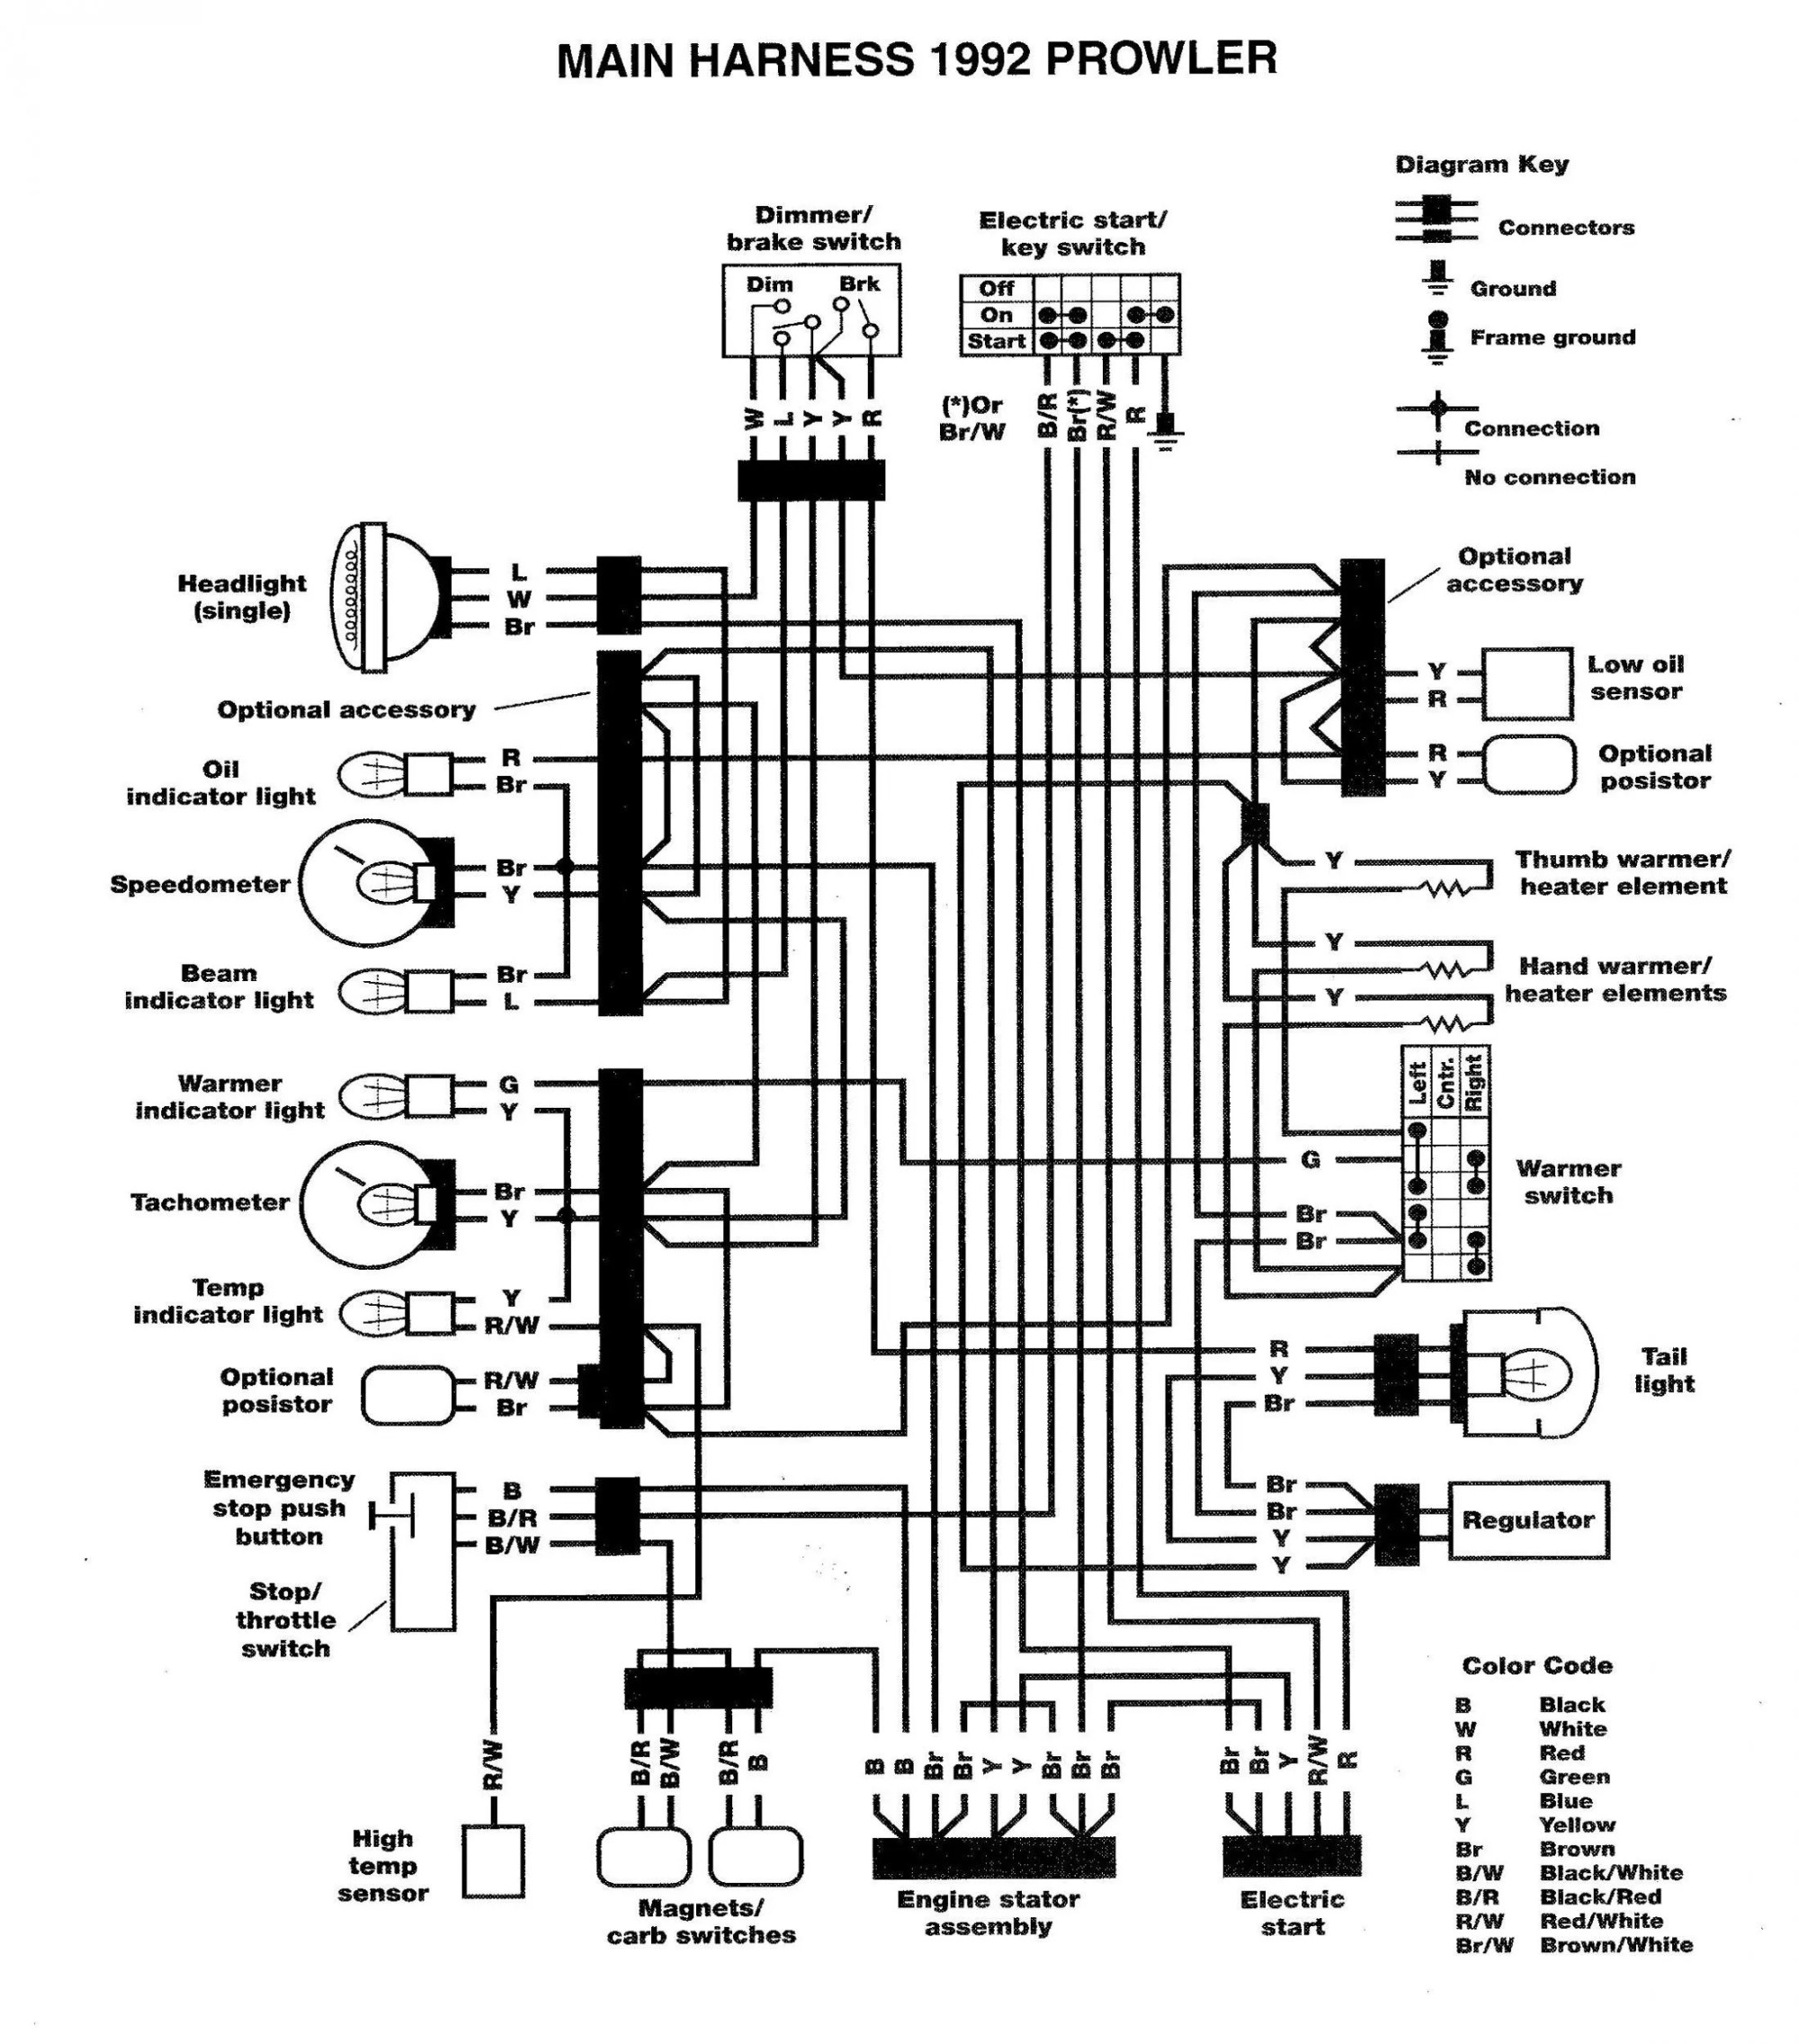 hight resolution of arctic cat 500 wiring diagram 2001 wiring diagram third level rh 8 12 14 jacobwinterstein com 3208 cat engine fuel pump 3116 cat engine fuel system